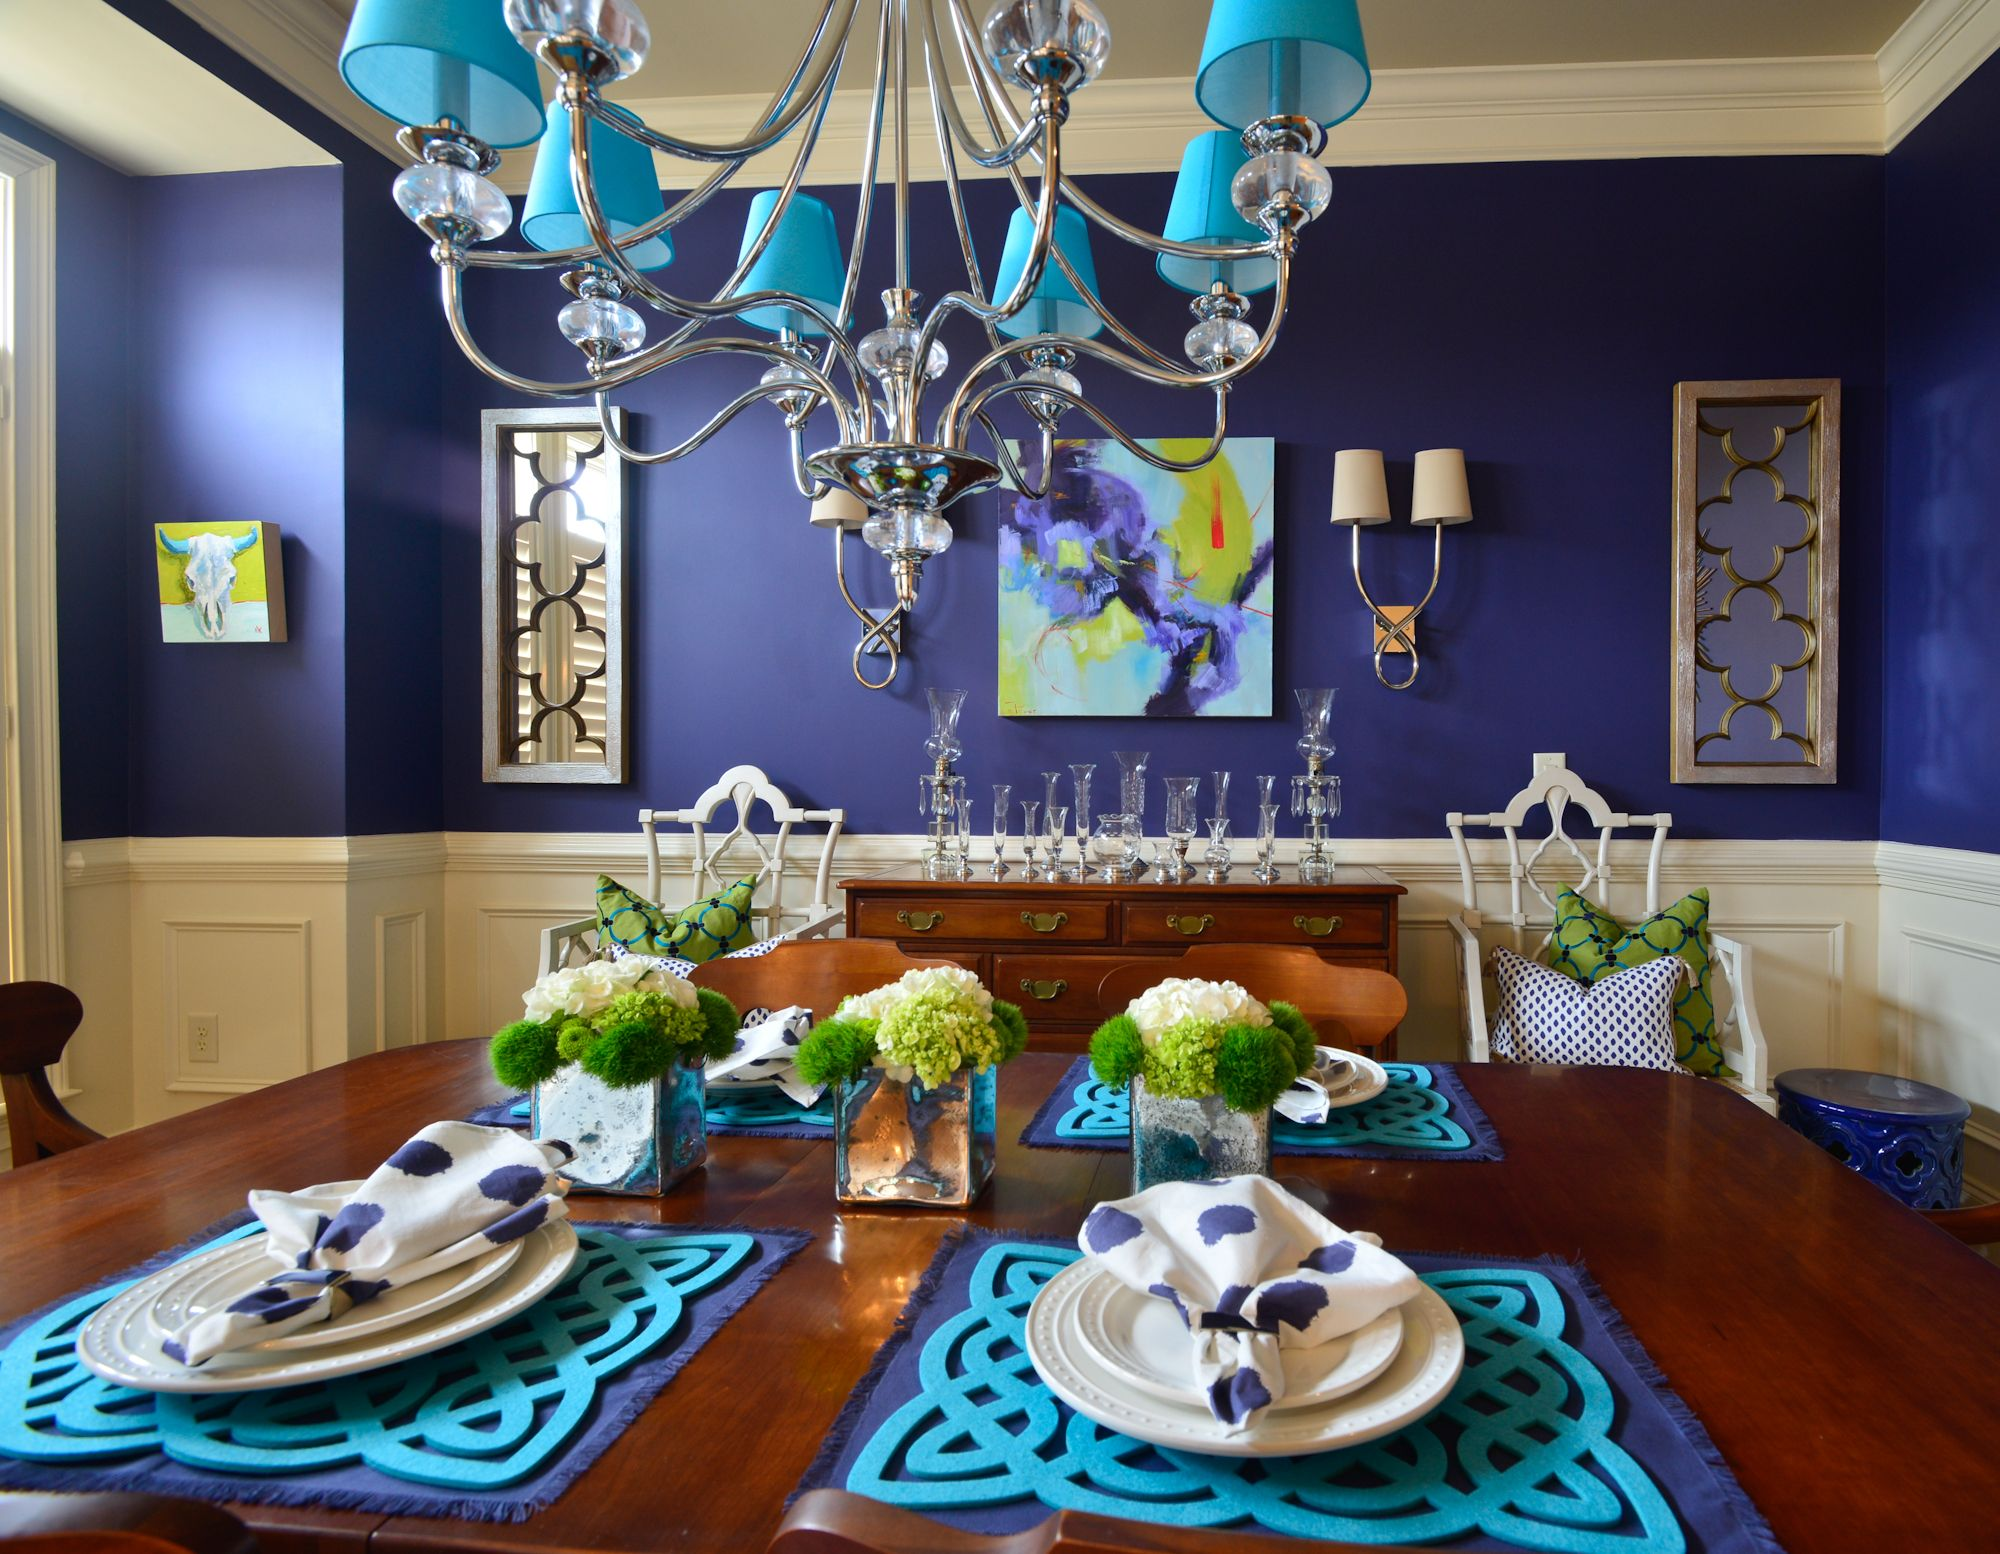 Director Of Trend And Design For The Home Depot Sarah Fishburnes Created This Beautiful